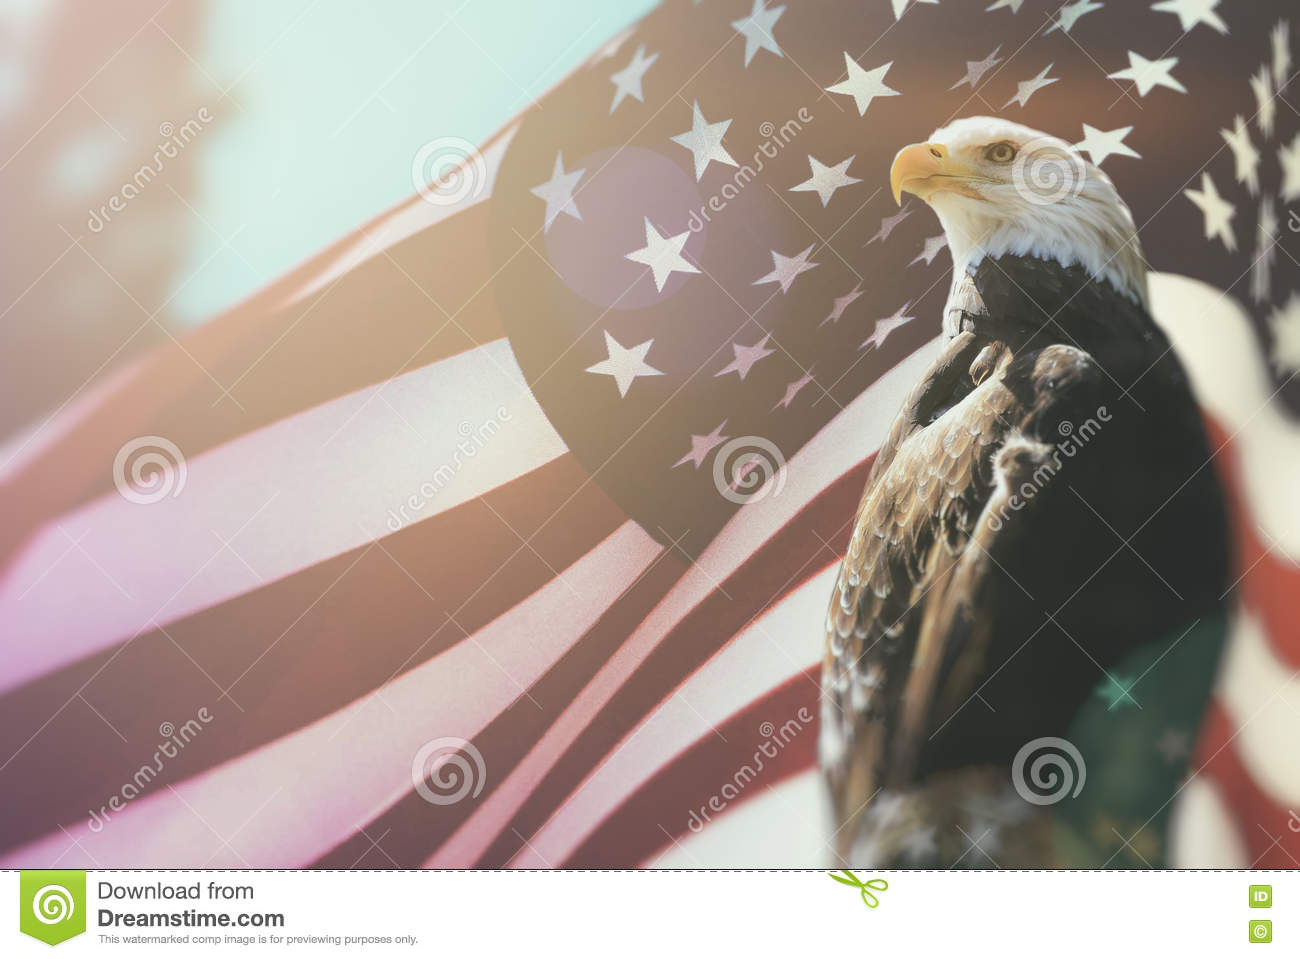 patriotism and the union of americans We the people of the united states of america, in order to form a more perfect union  -preamble to the us constitution i believe in a country where every citizen, whether they are born americans or just took the oath of citizenship, is heir t.